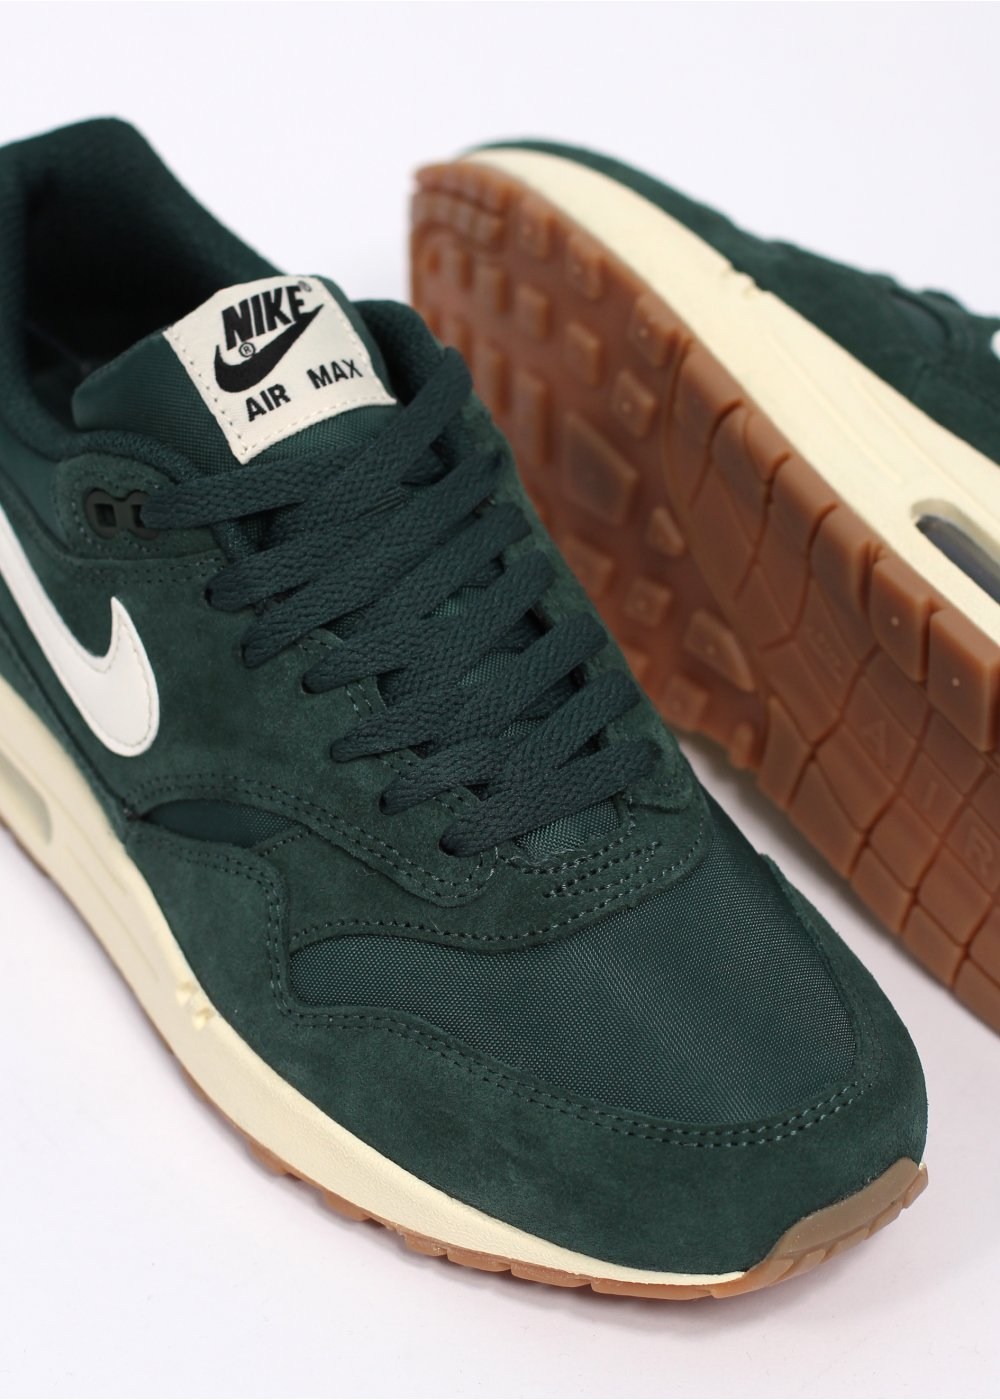 Air Max 1 Green Suede